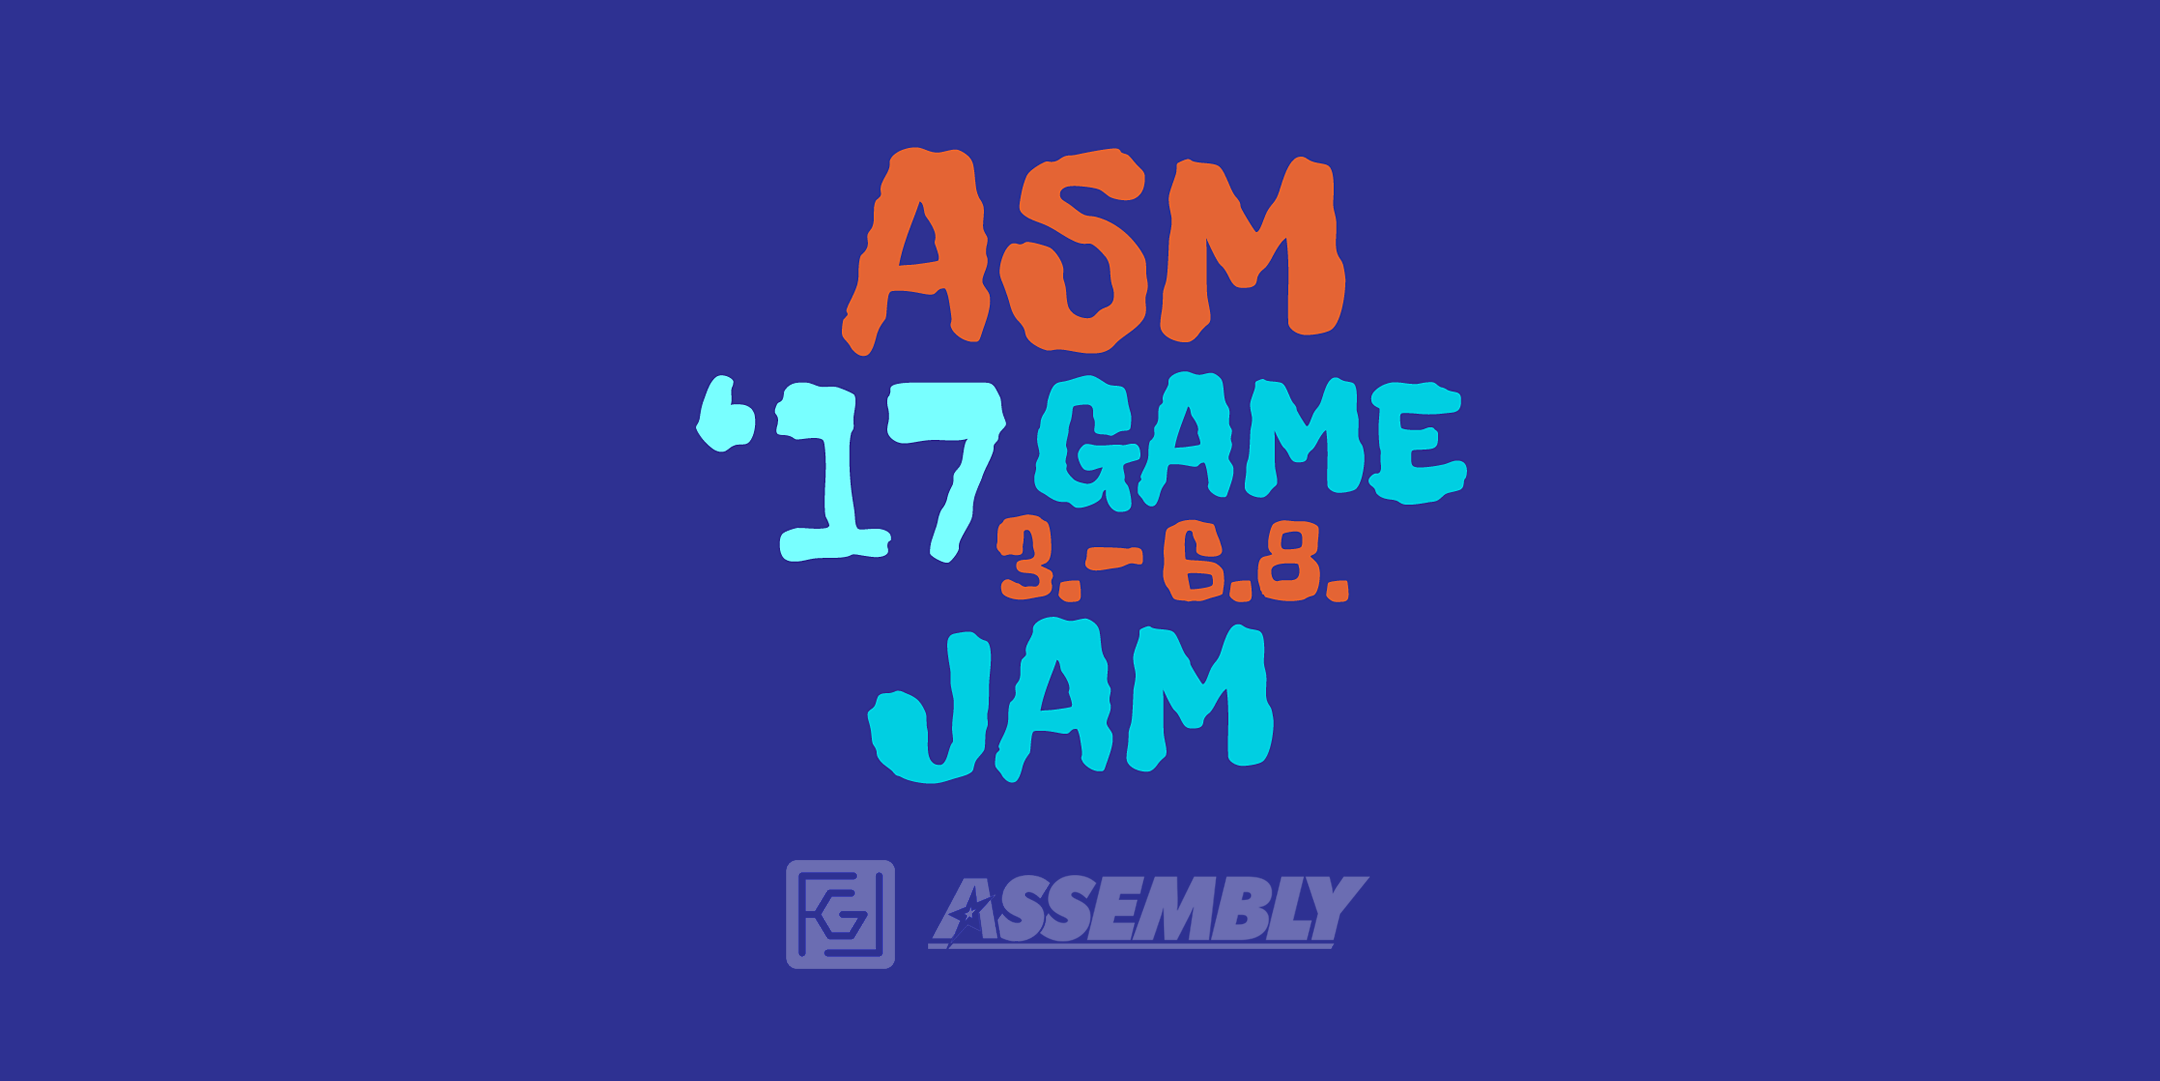 asm_eventbrite_banner